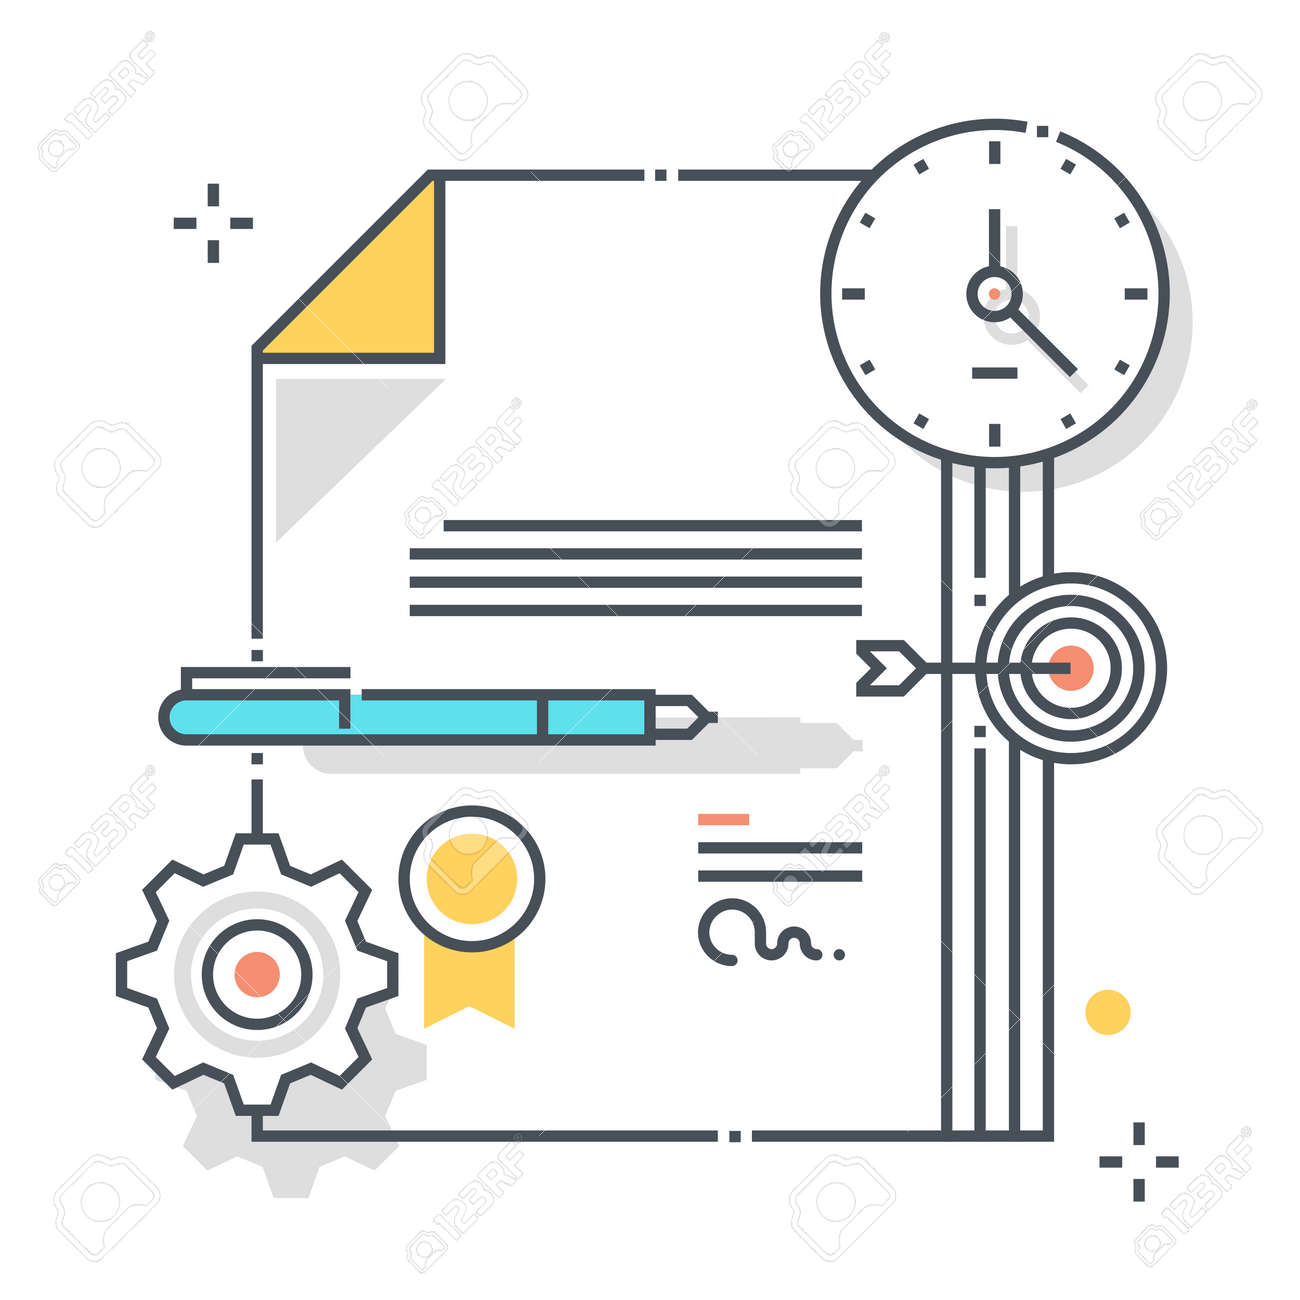 Legal documents related color line vector icon, illustration. The icon is about contract, policy, assurance, start a claim, documents, agreement, submission. The composition is infinitely scalable. - 163698143